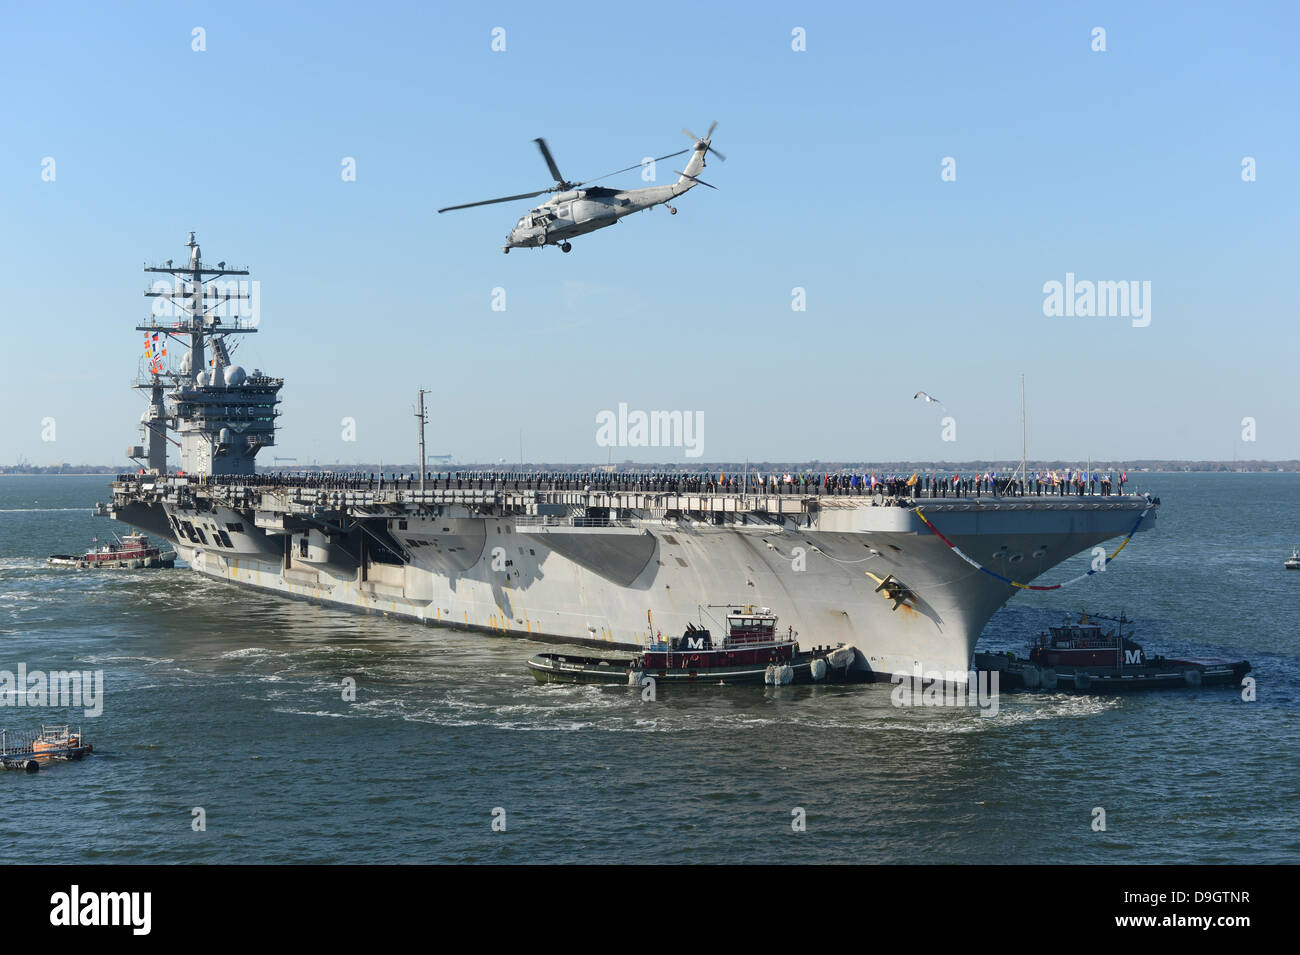 Nimitz-class aircraft carrier USS Dwight D. Eisenhower. - Stock Image